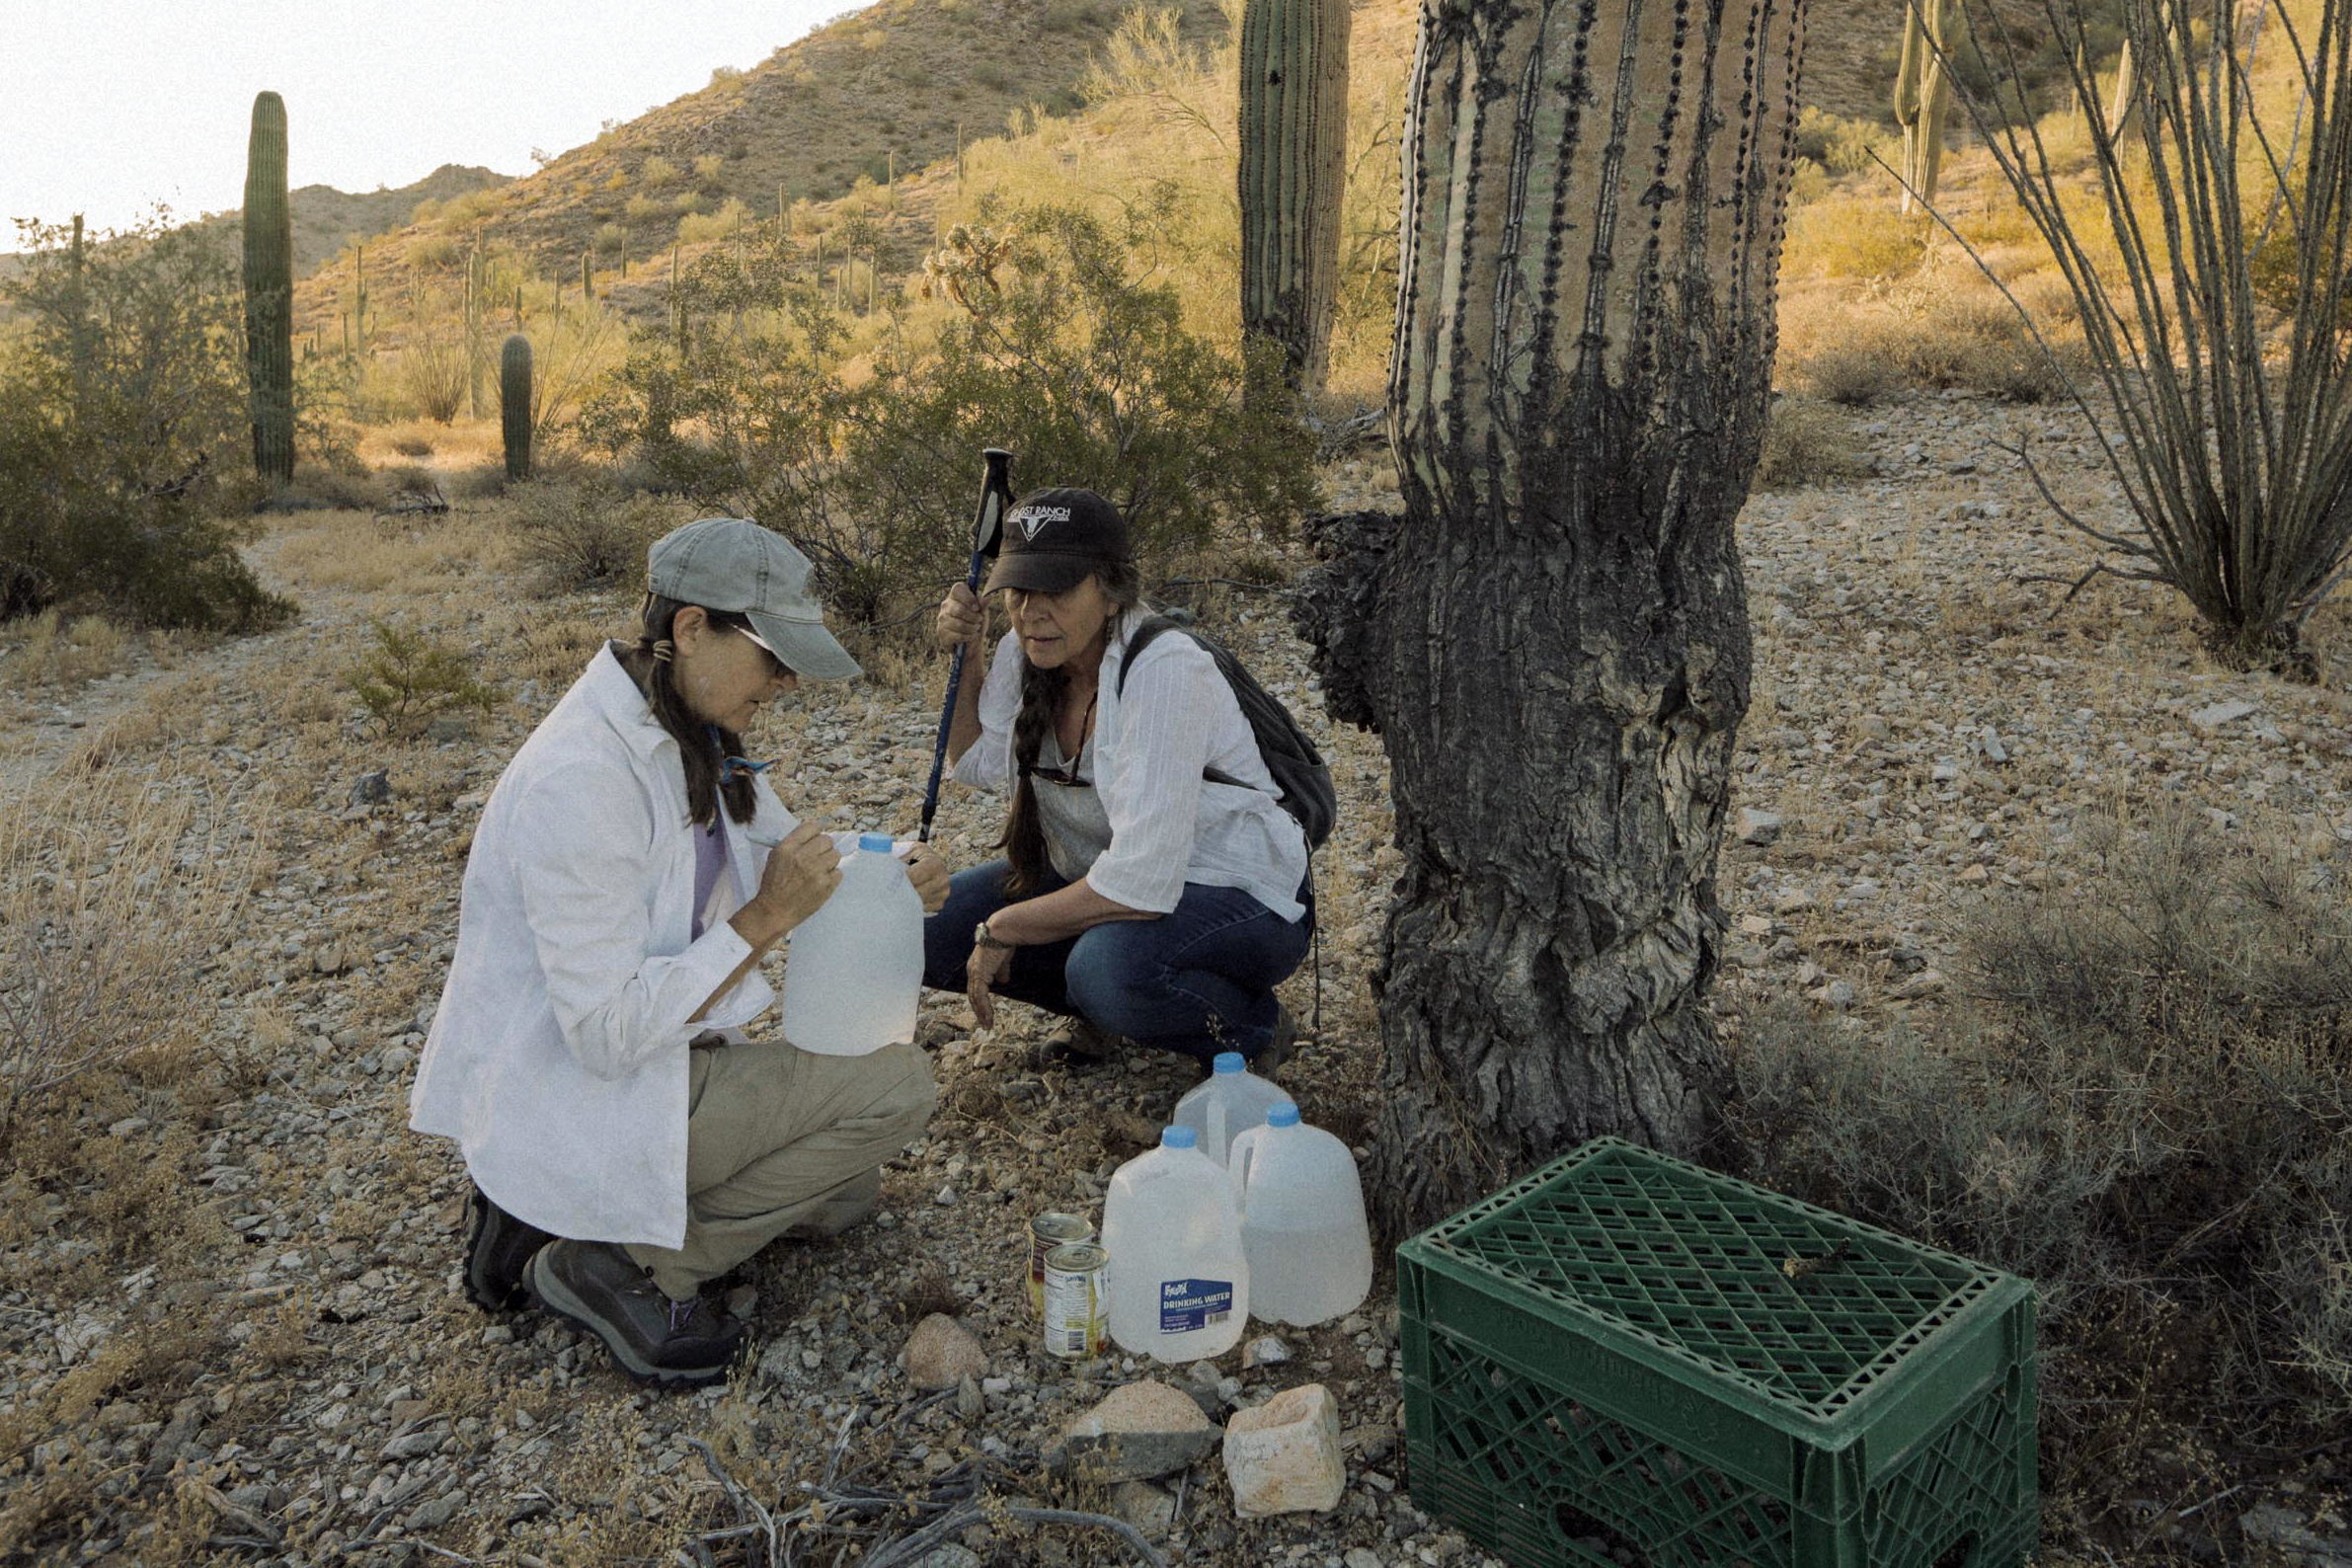 3005: Cheryl Opalski, an Ajo resident and volunteer with the Samaritans, makes a water drop with a new member near the boundary line of Cabeza Prieta National Wildlife Refuge, AZ. June 2019. Photo by Jason Motlagh.